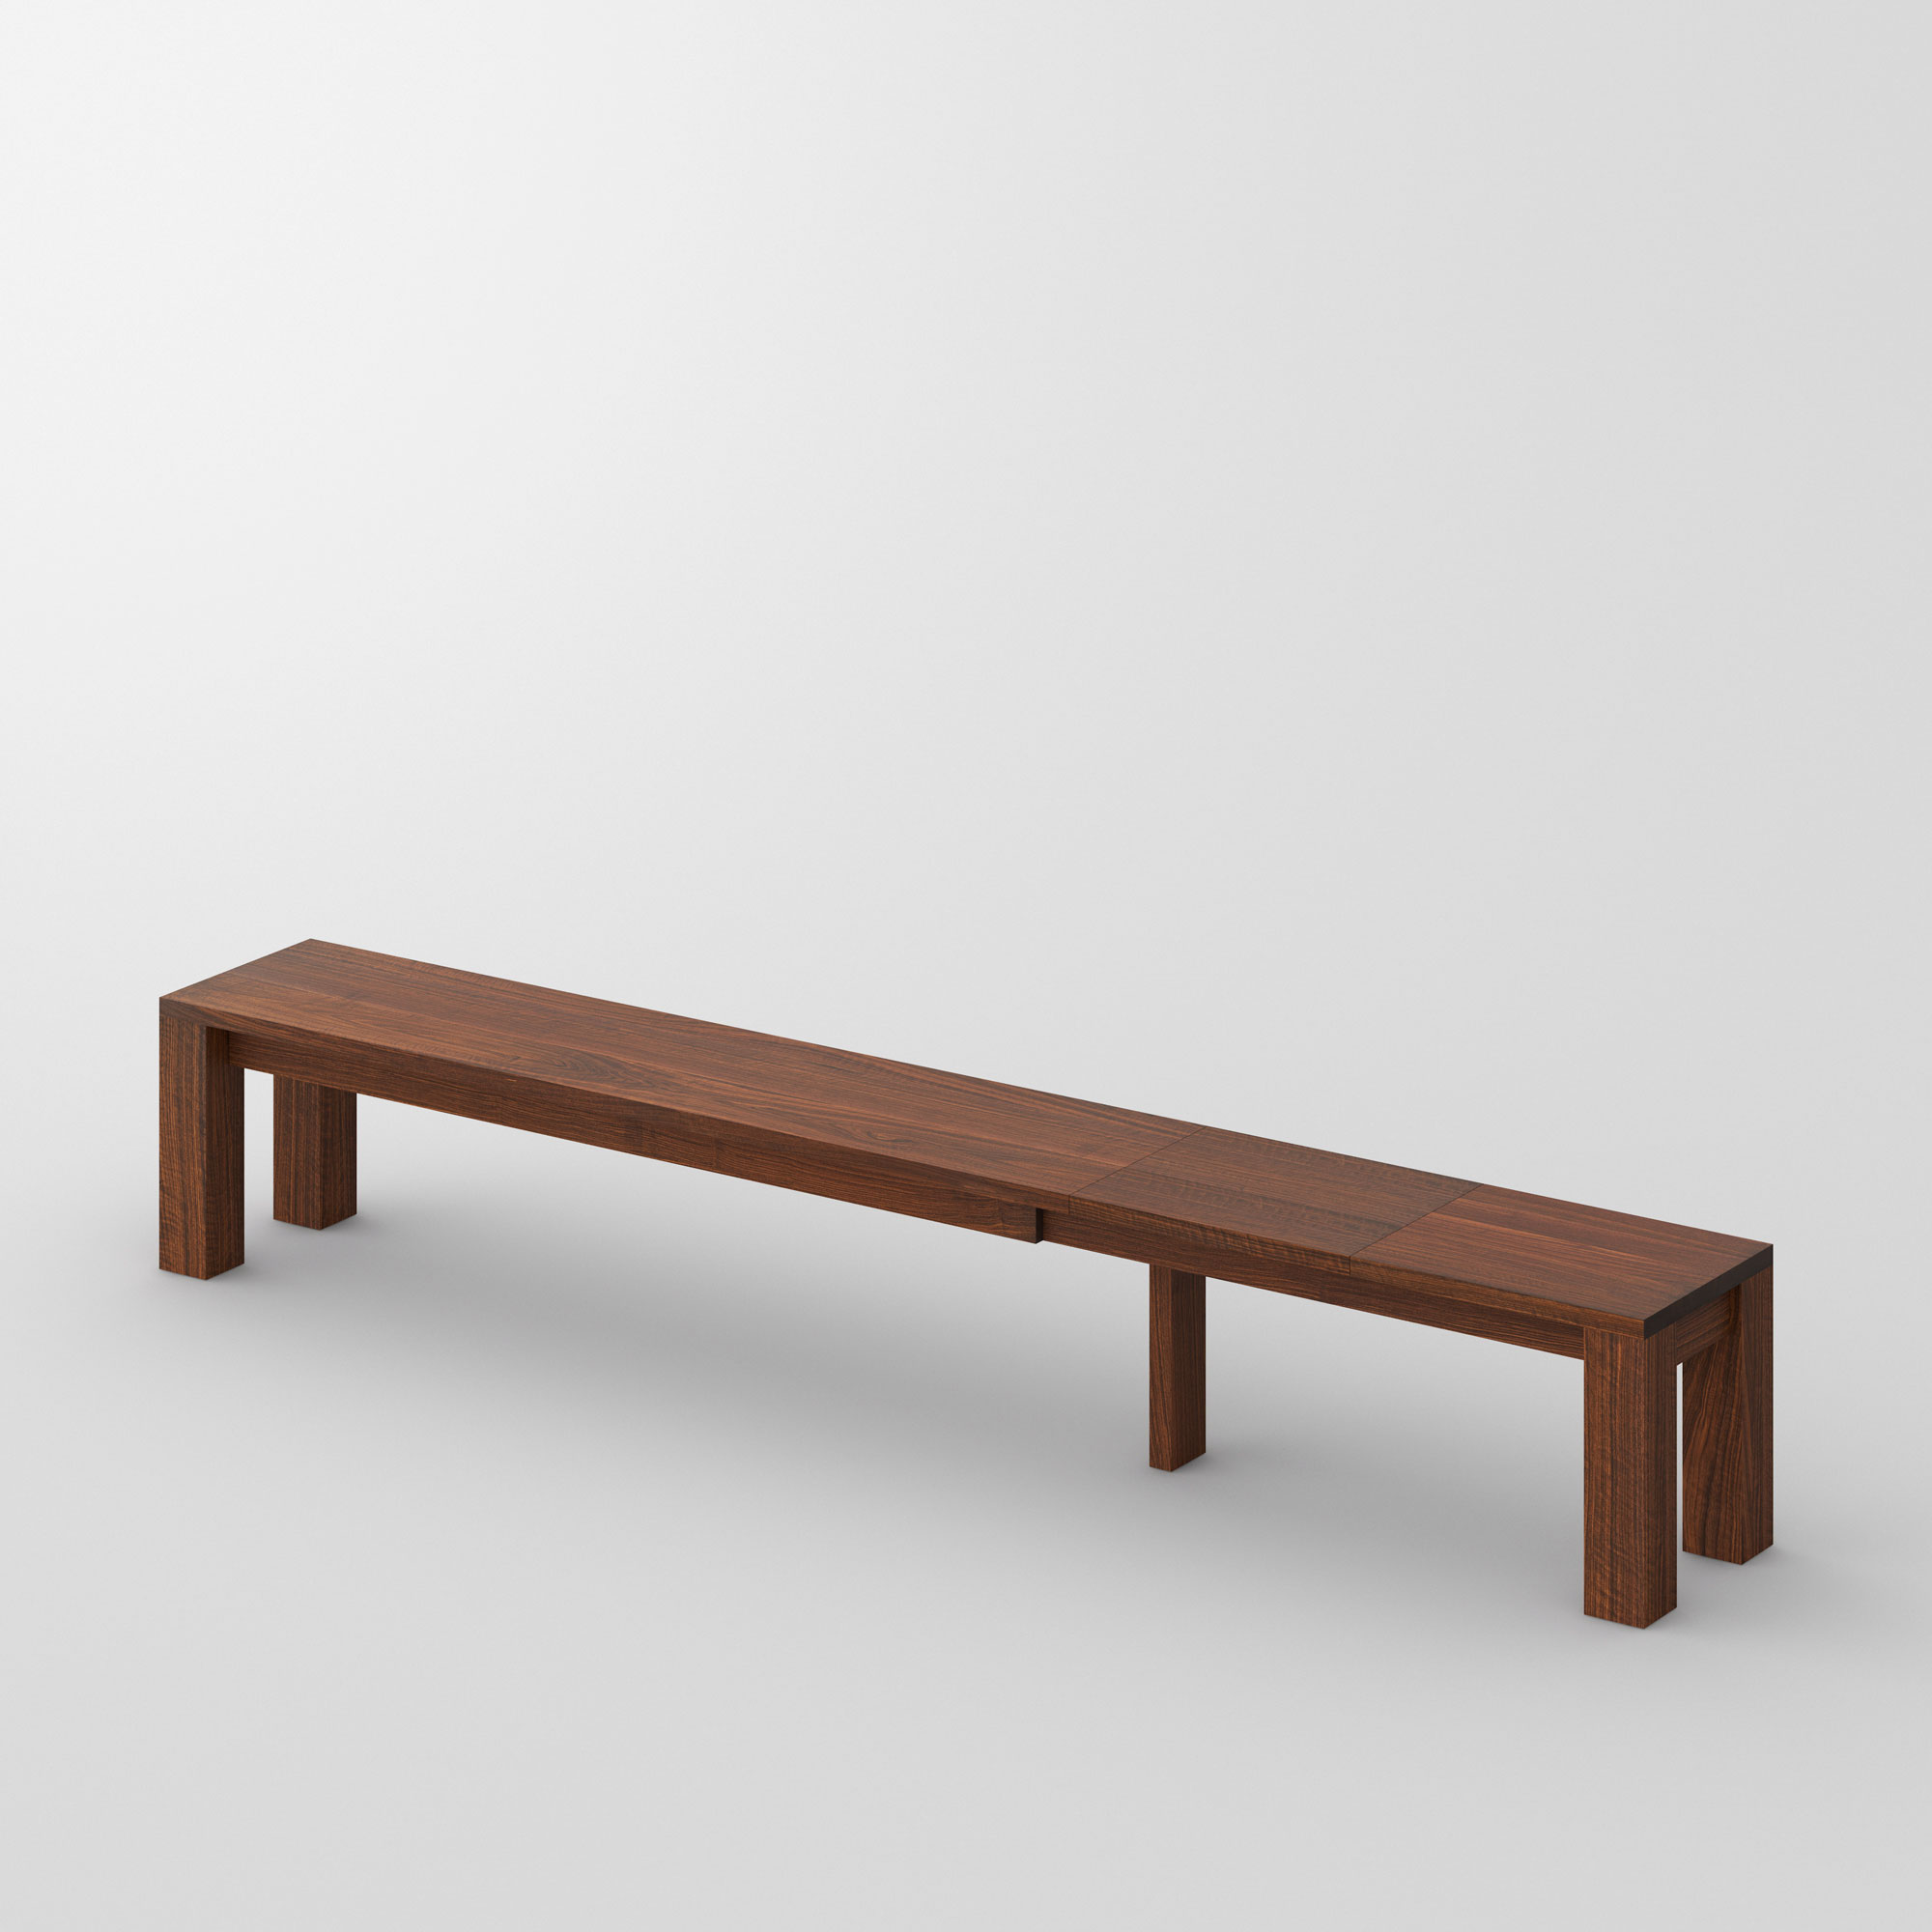 Extendable Bench CUBUS EP 3 cam1 custom made in solid wood by vitamin design